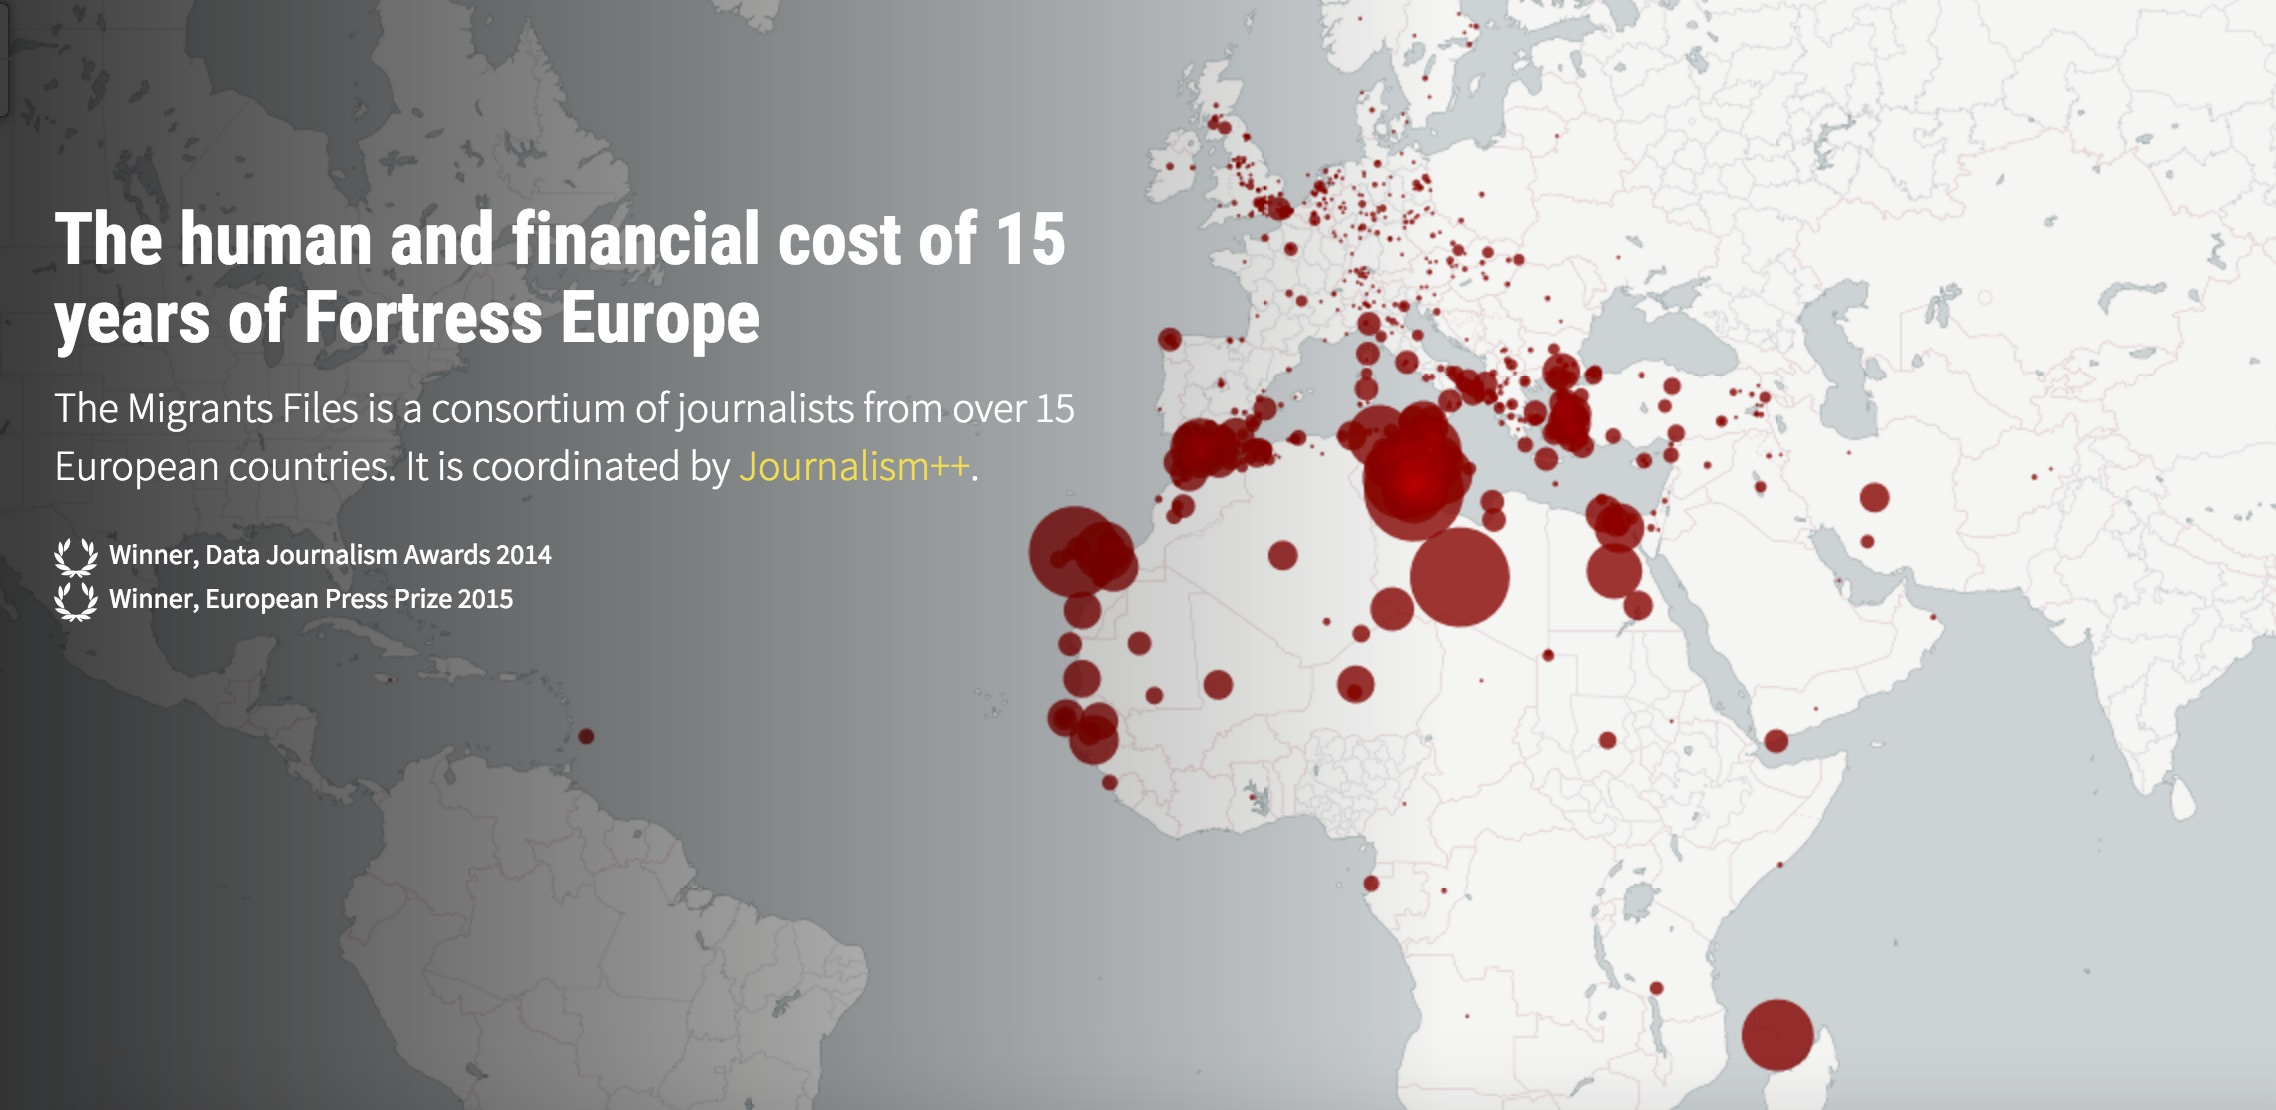 The human and financial costs of Fortress Europe